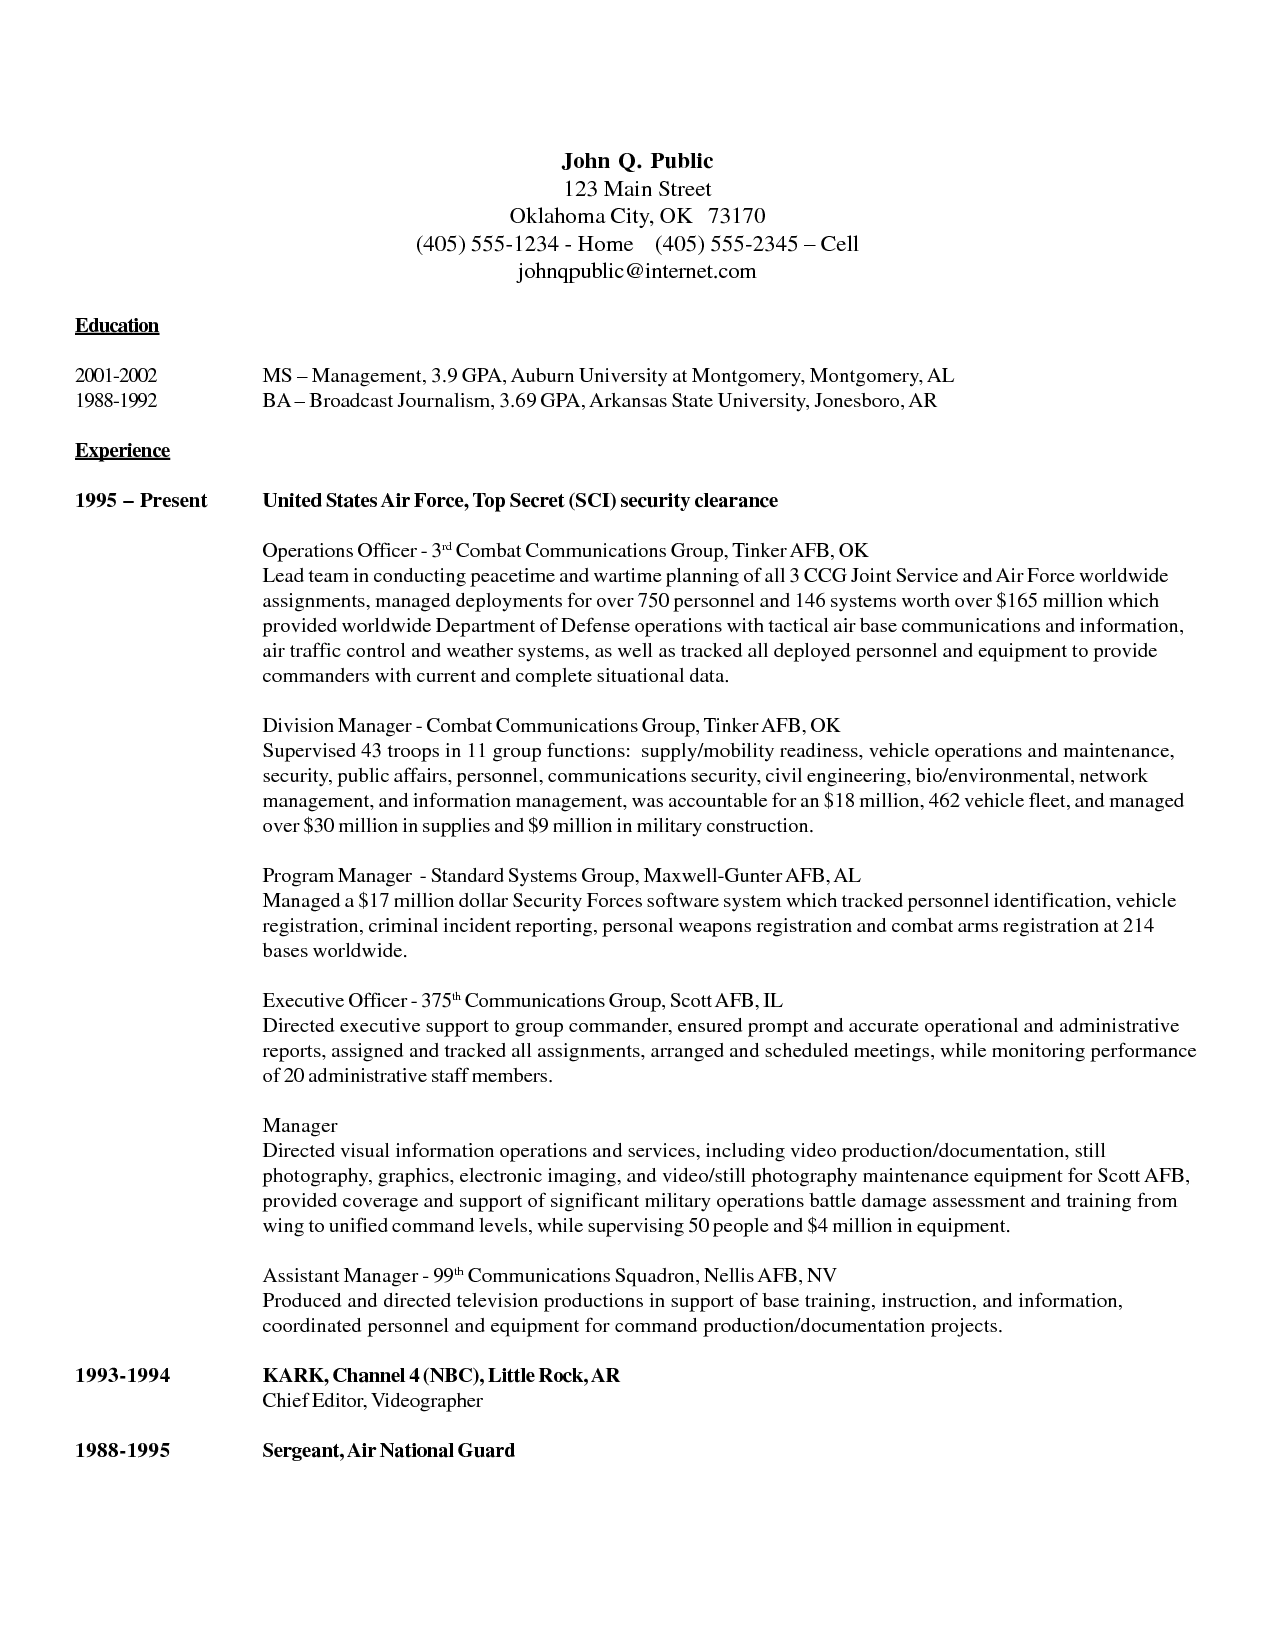 Security Officer Resume Http Www Resumecareer Info Security